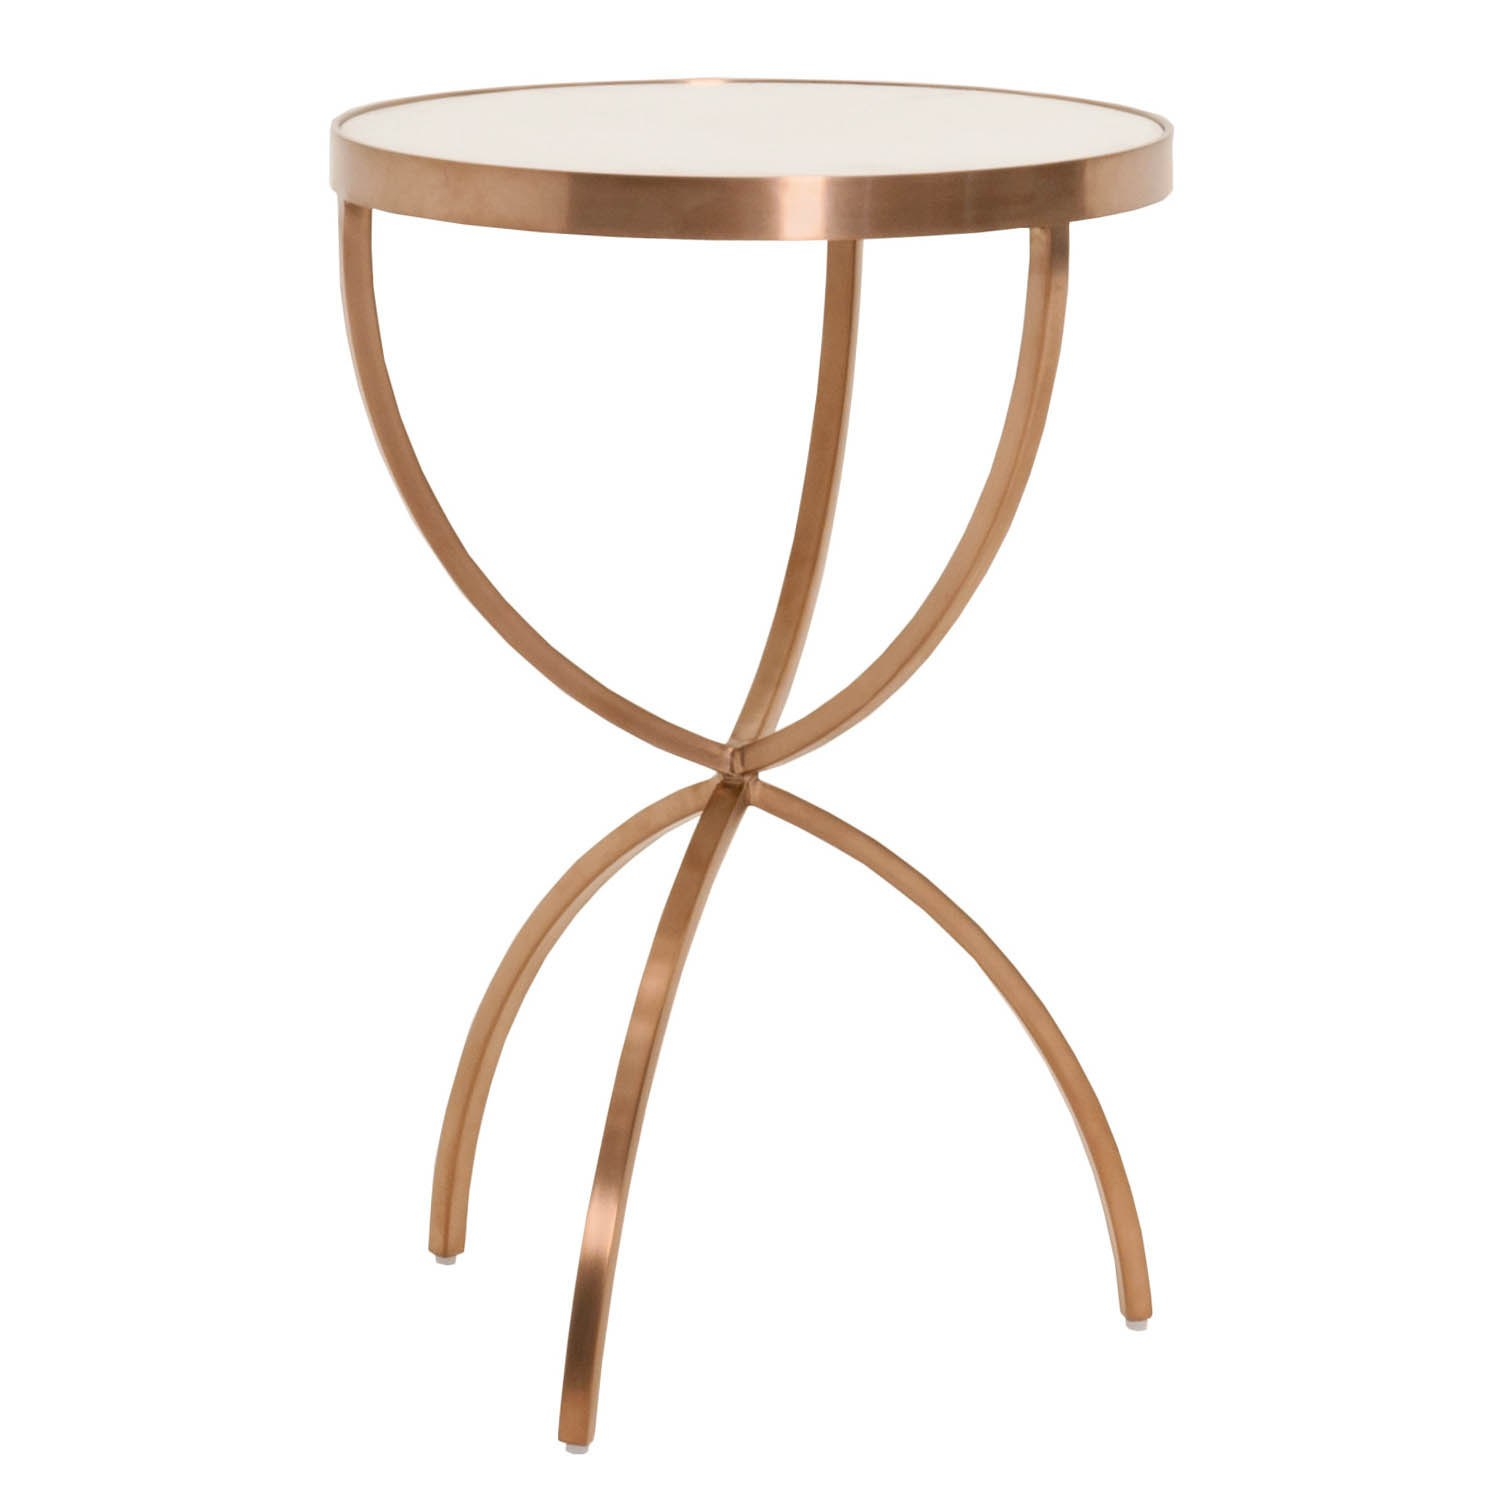 gray manor mia brushed rose gold accent table free shipping today white round end console behind couch against wall bench pool nate berkus bedding short narrow tables wire side